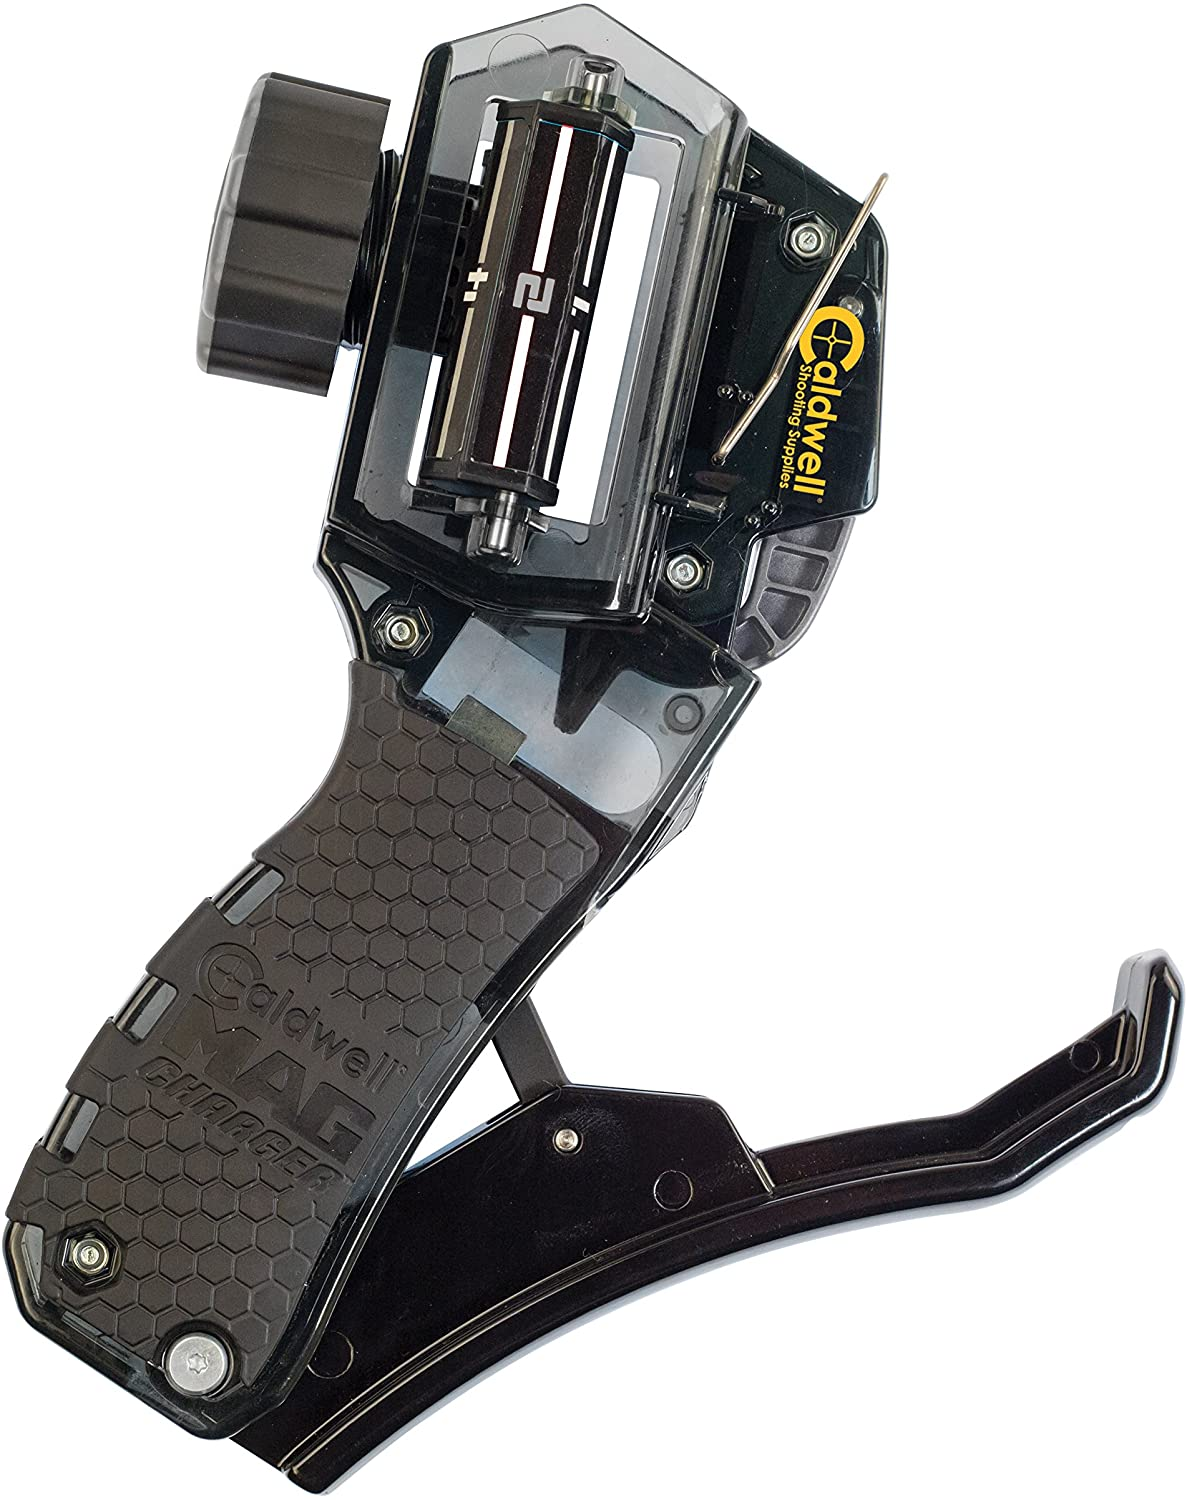 Caldwell Universal Pistol Loader with Design Solid Ergonomic Fi 70% OFF Free shipping on posting reviews Outlet